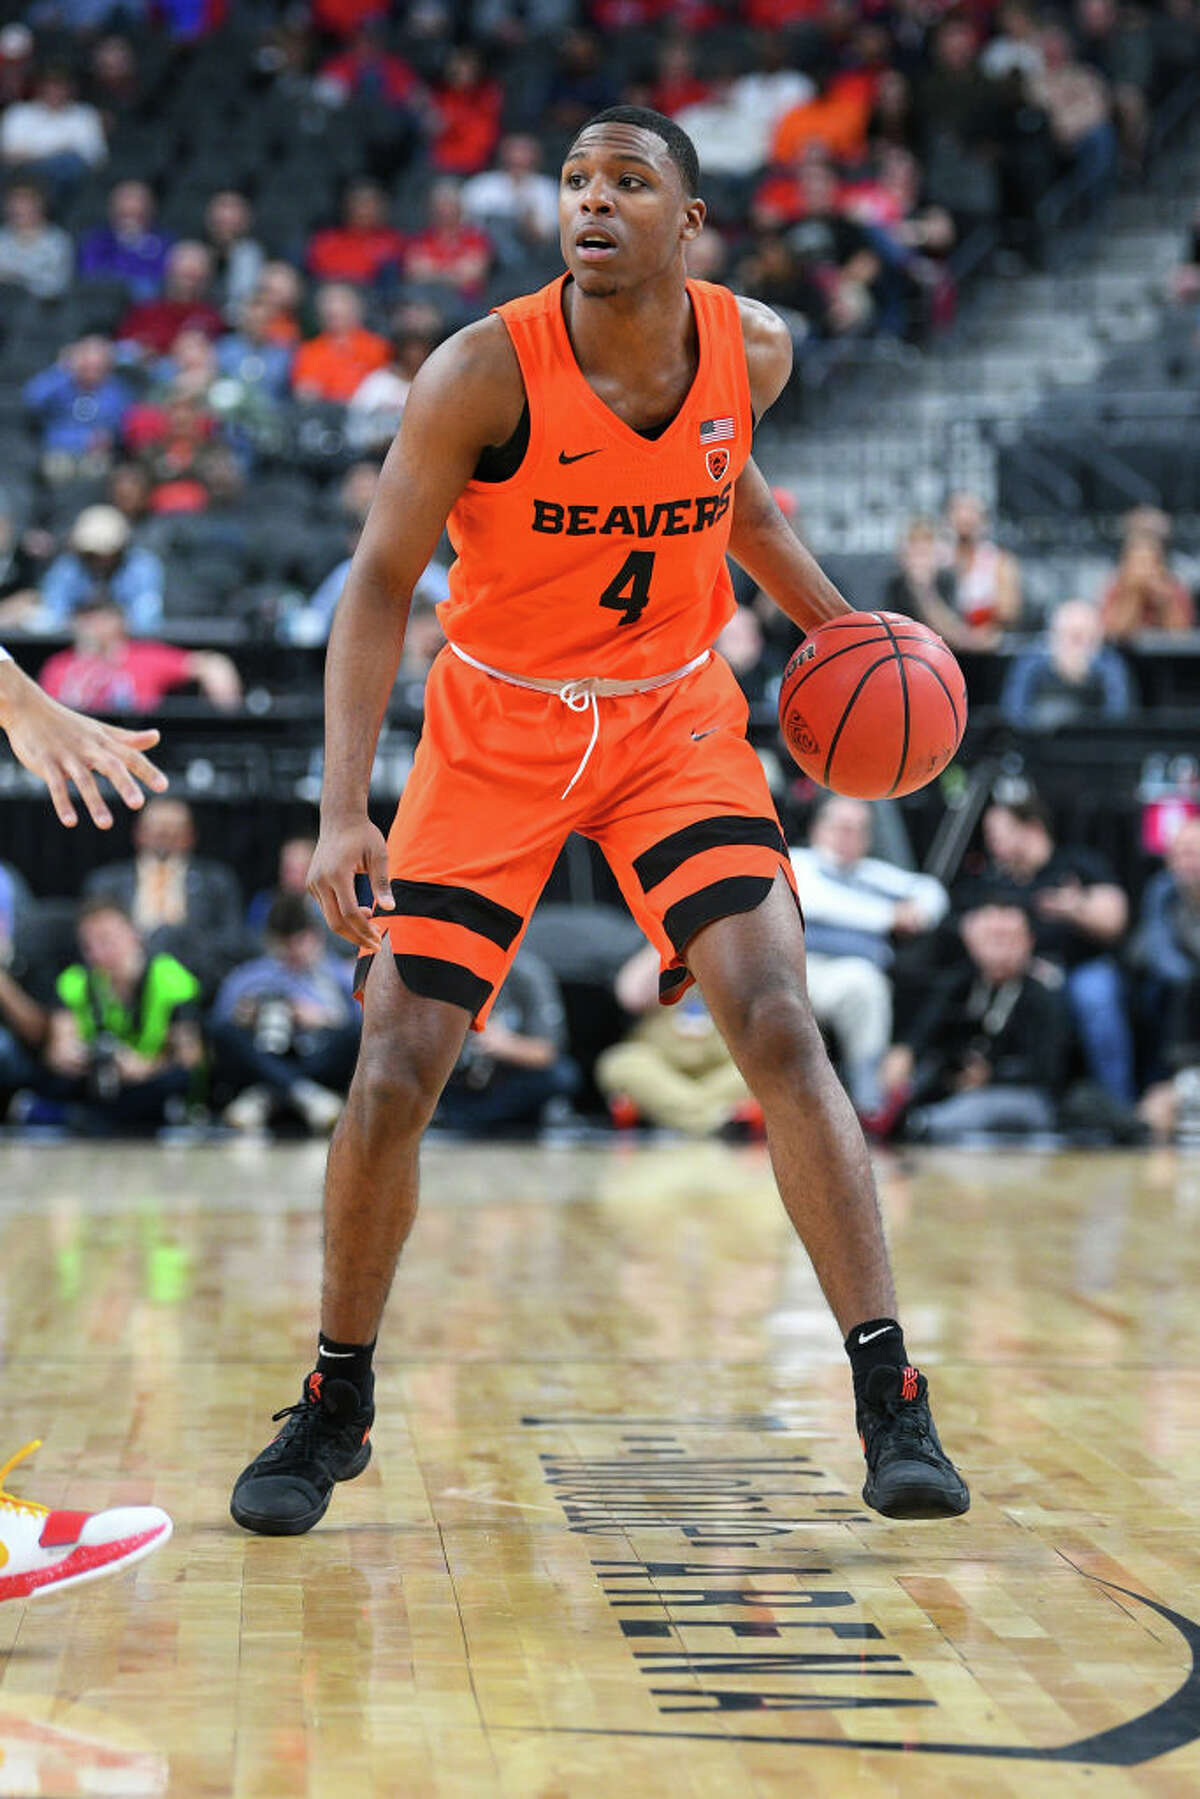 3. Oregon State Beavers (15-8, 7-4 Pac-12) The Beavers split their weekend in the bay last week, falling to Stanford and beating Cal. Against Stanford, shot just 38 percent from the field. Against Cal, that number jumped up to 54. Like many of the other teams in this year's Pac-12, the Beavers struggle to put a consistent product out on the course. Time will tell if they can find more of a rhythm in a coming weeks.